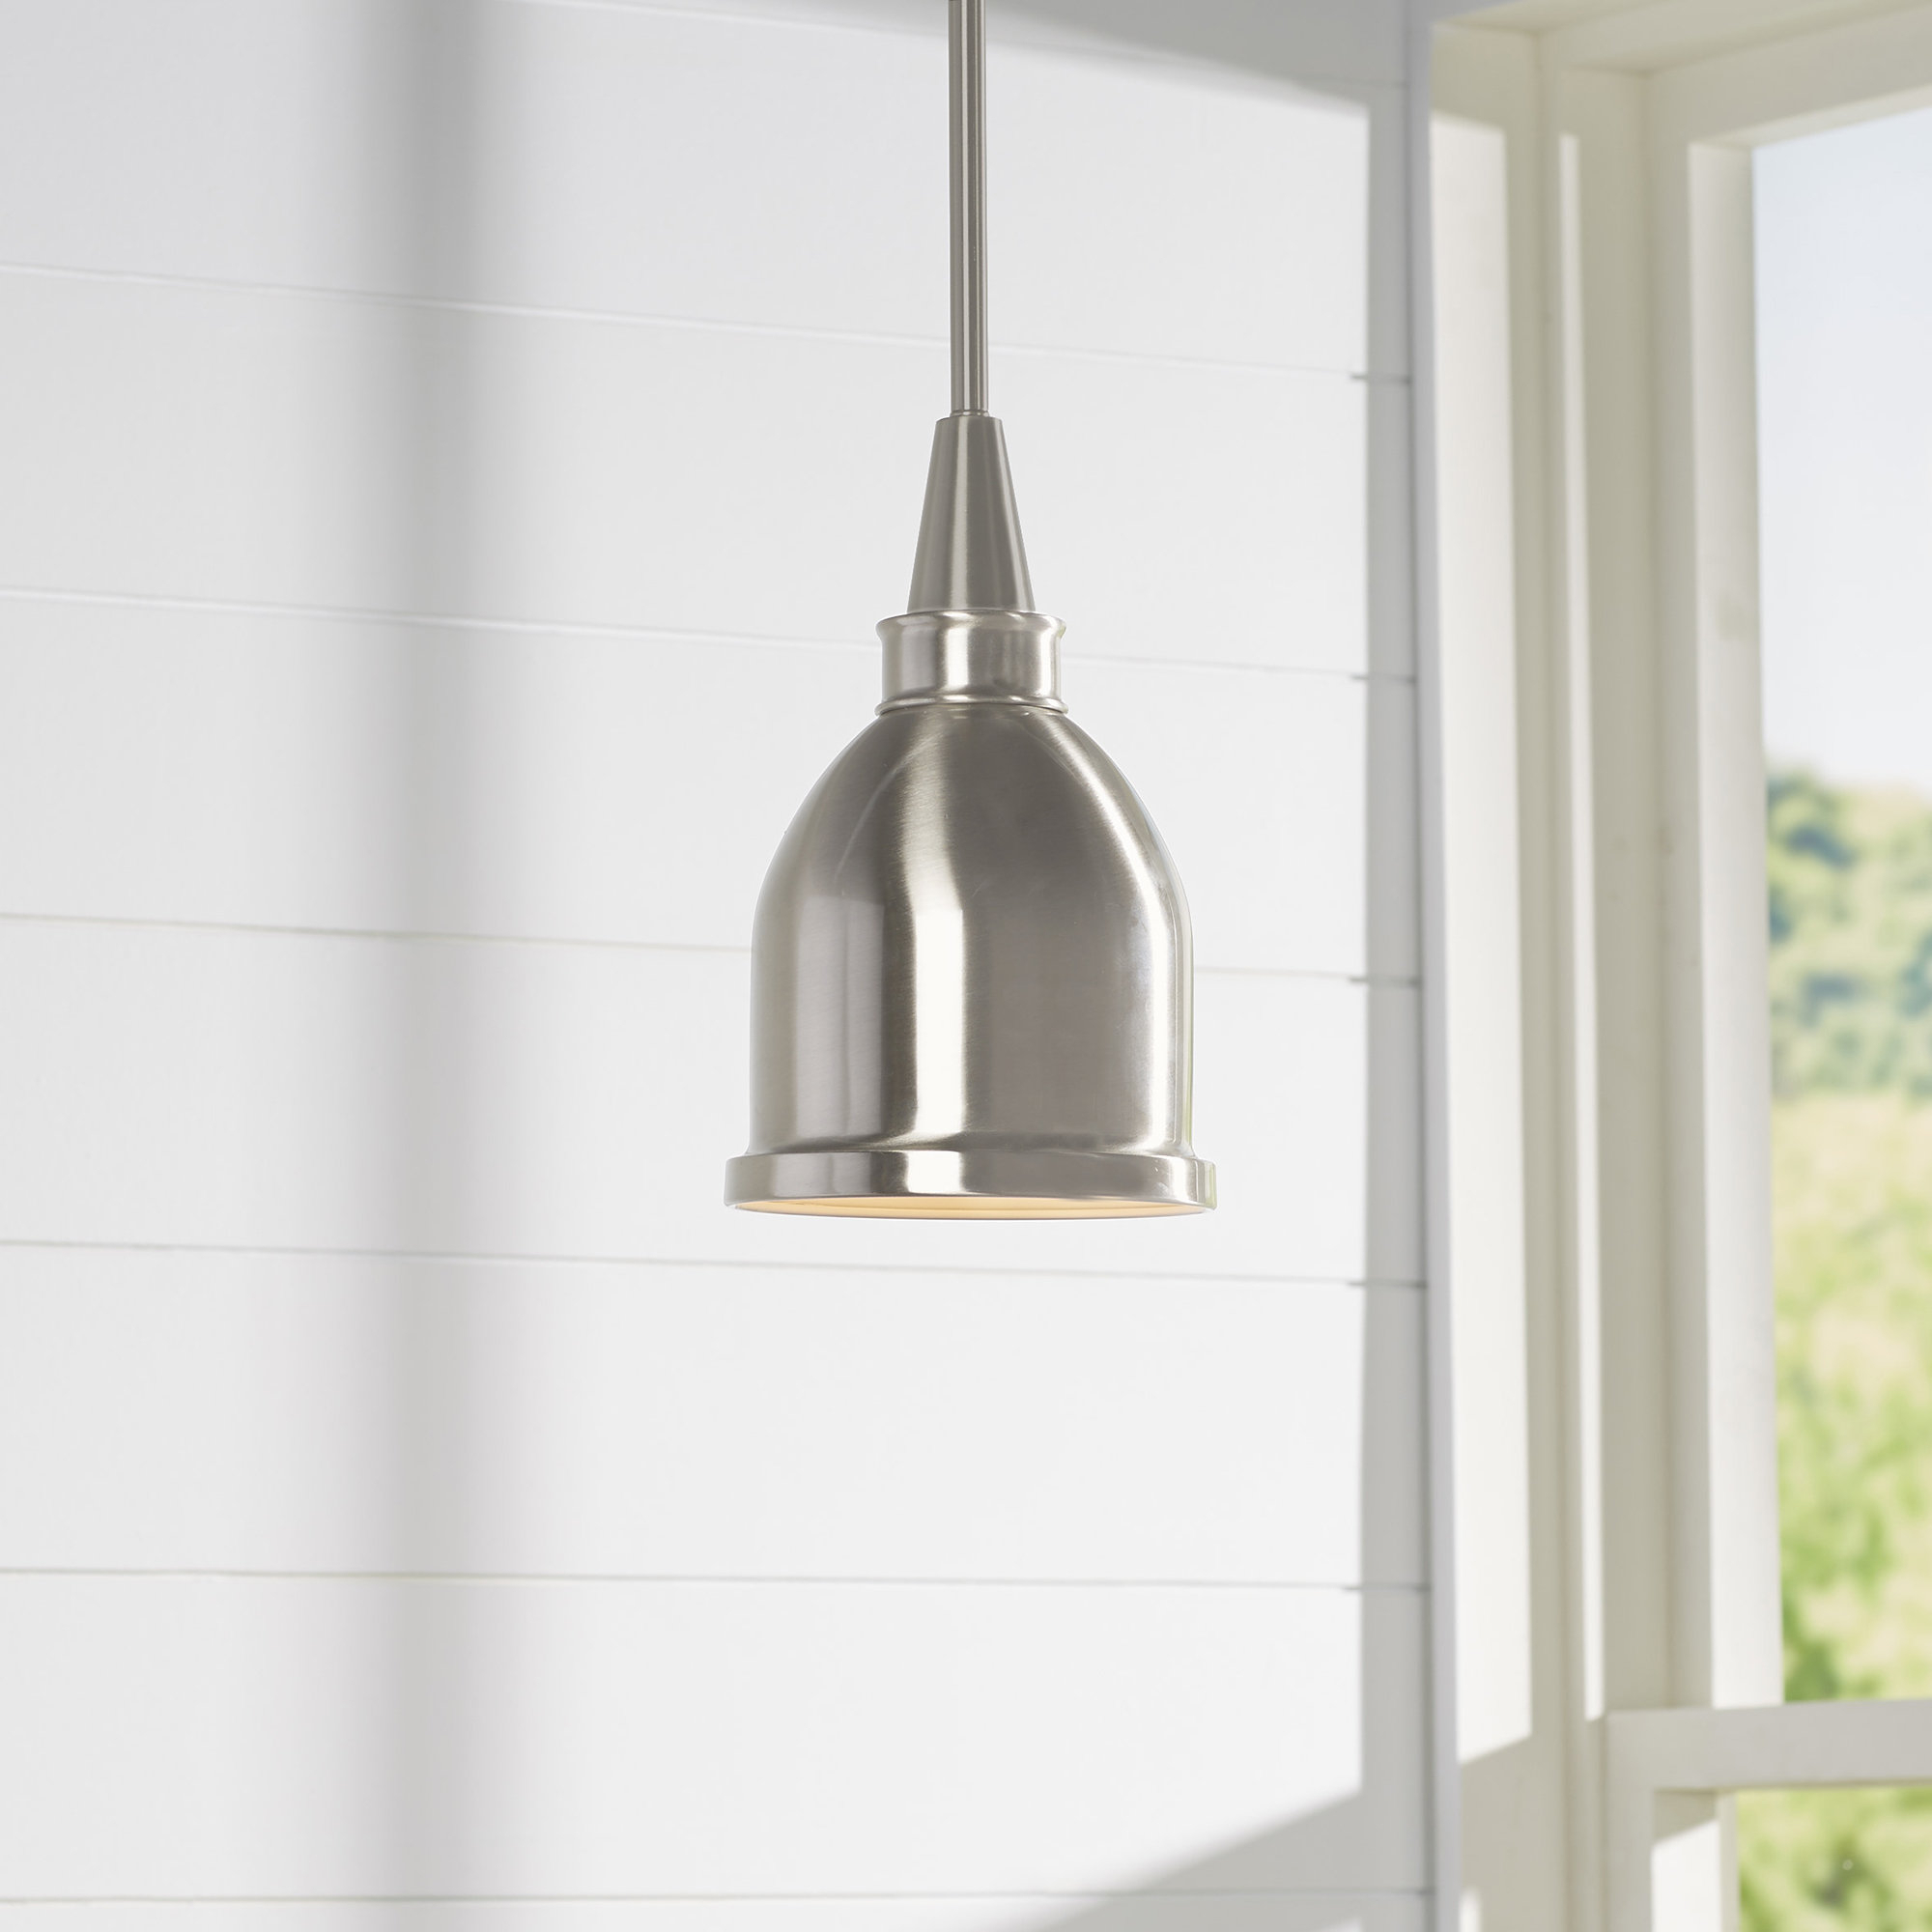 Manston 1 Light Single Bell Pendant Throughout Widely Used Hamilton 1 Light Single Dome Pendants (View 13 of 20)